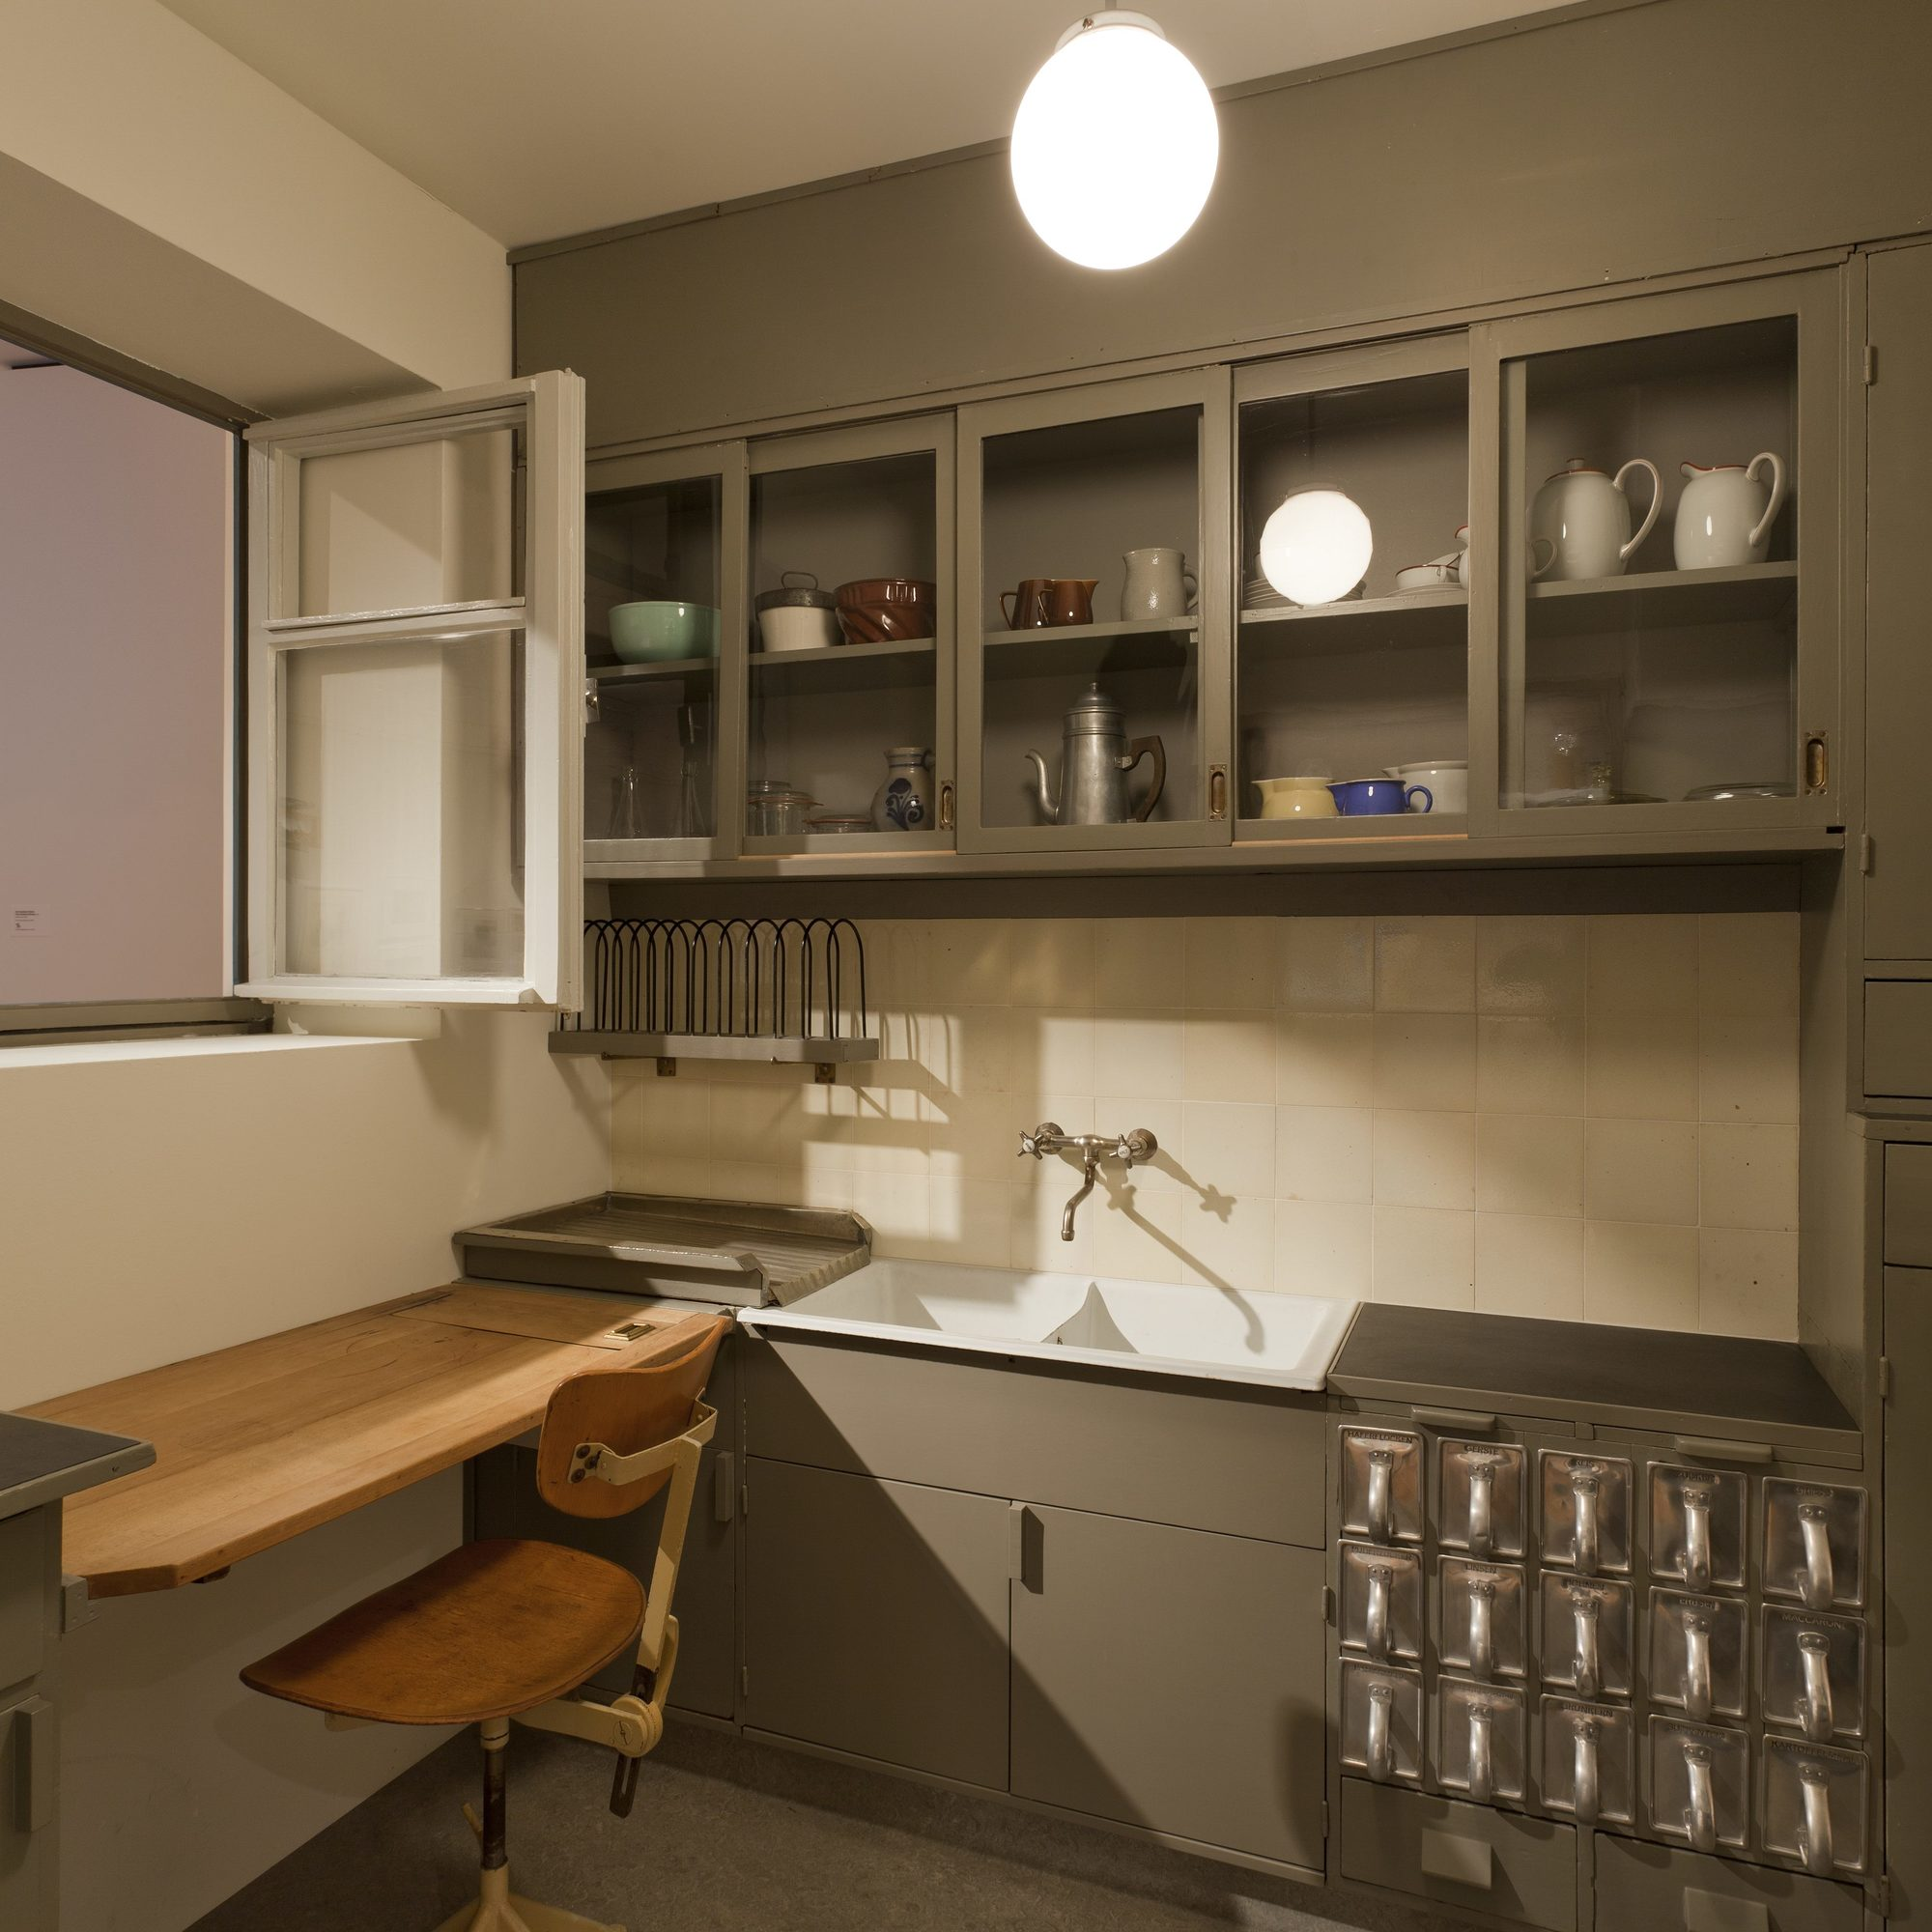 Of Modern Kitchen Counter Space Design And The Modern Kitchen Moma